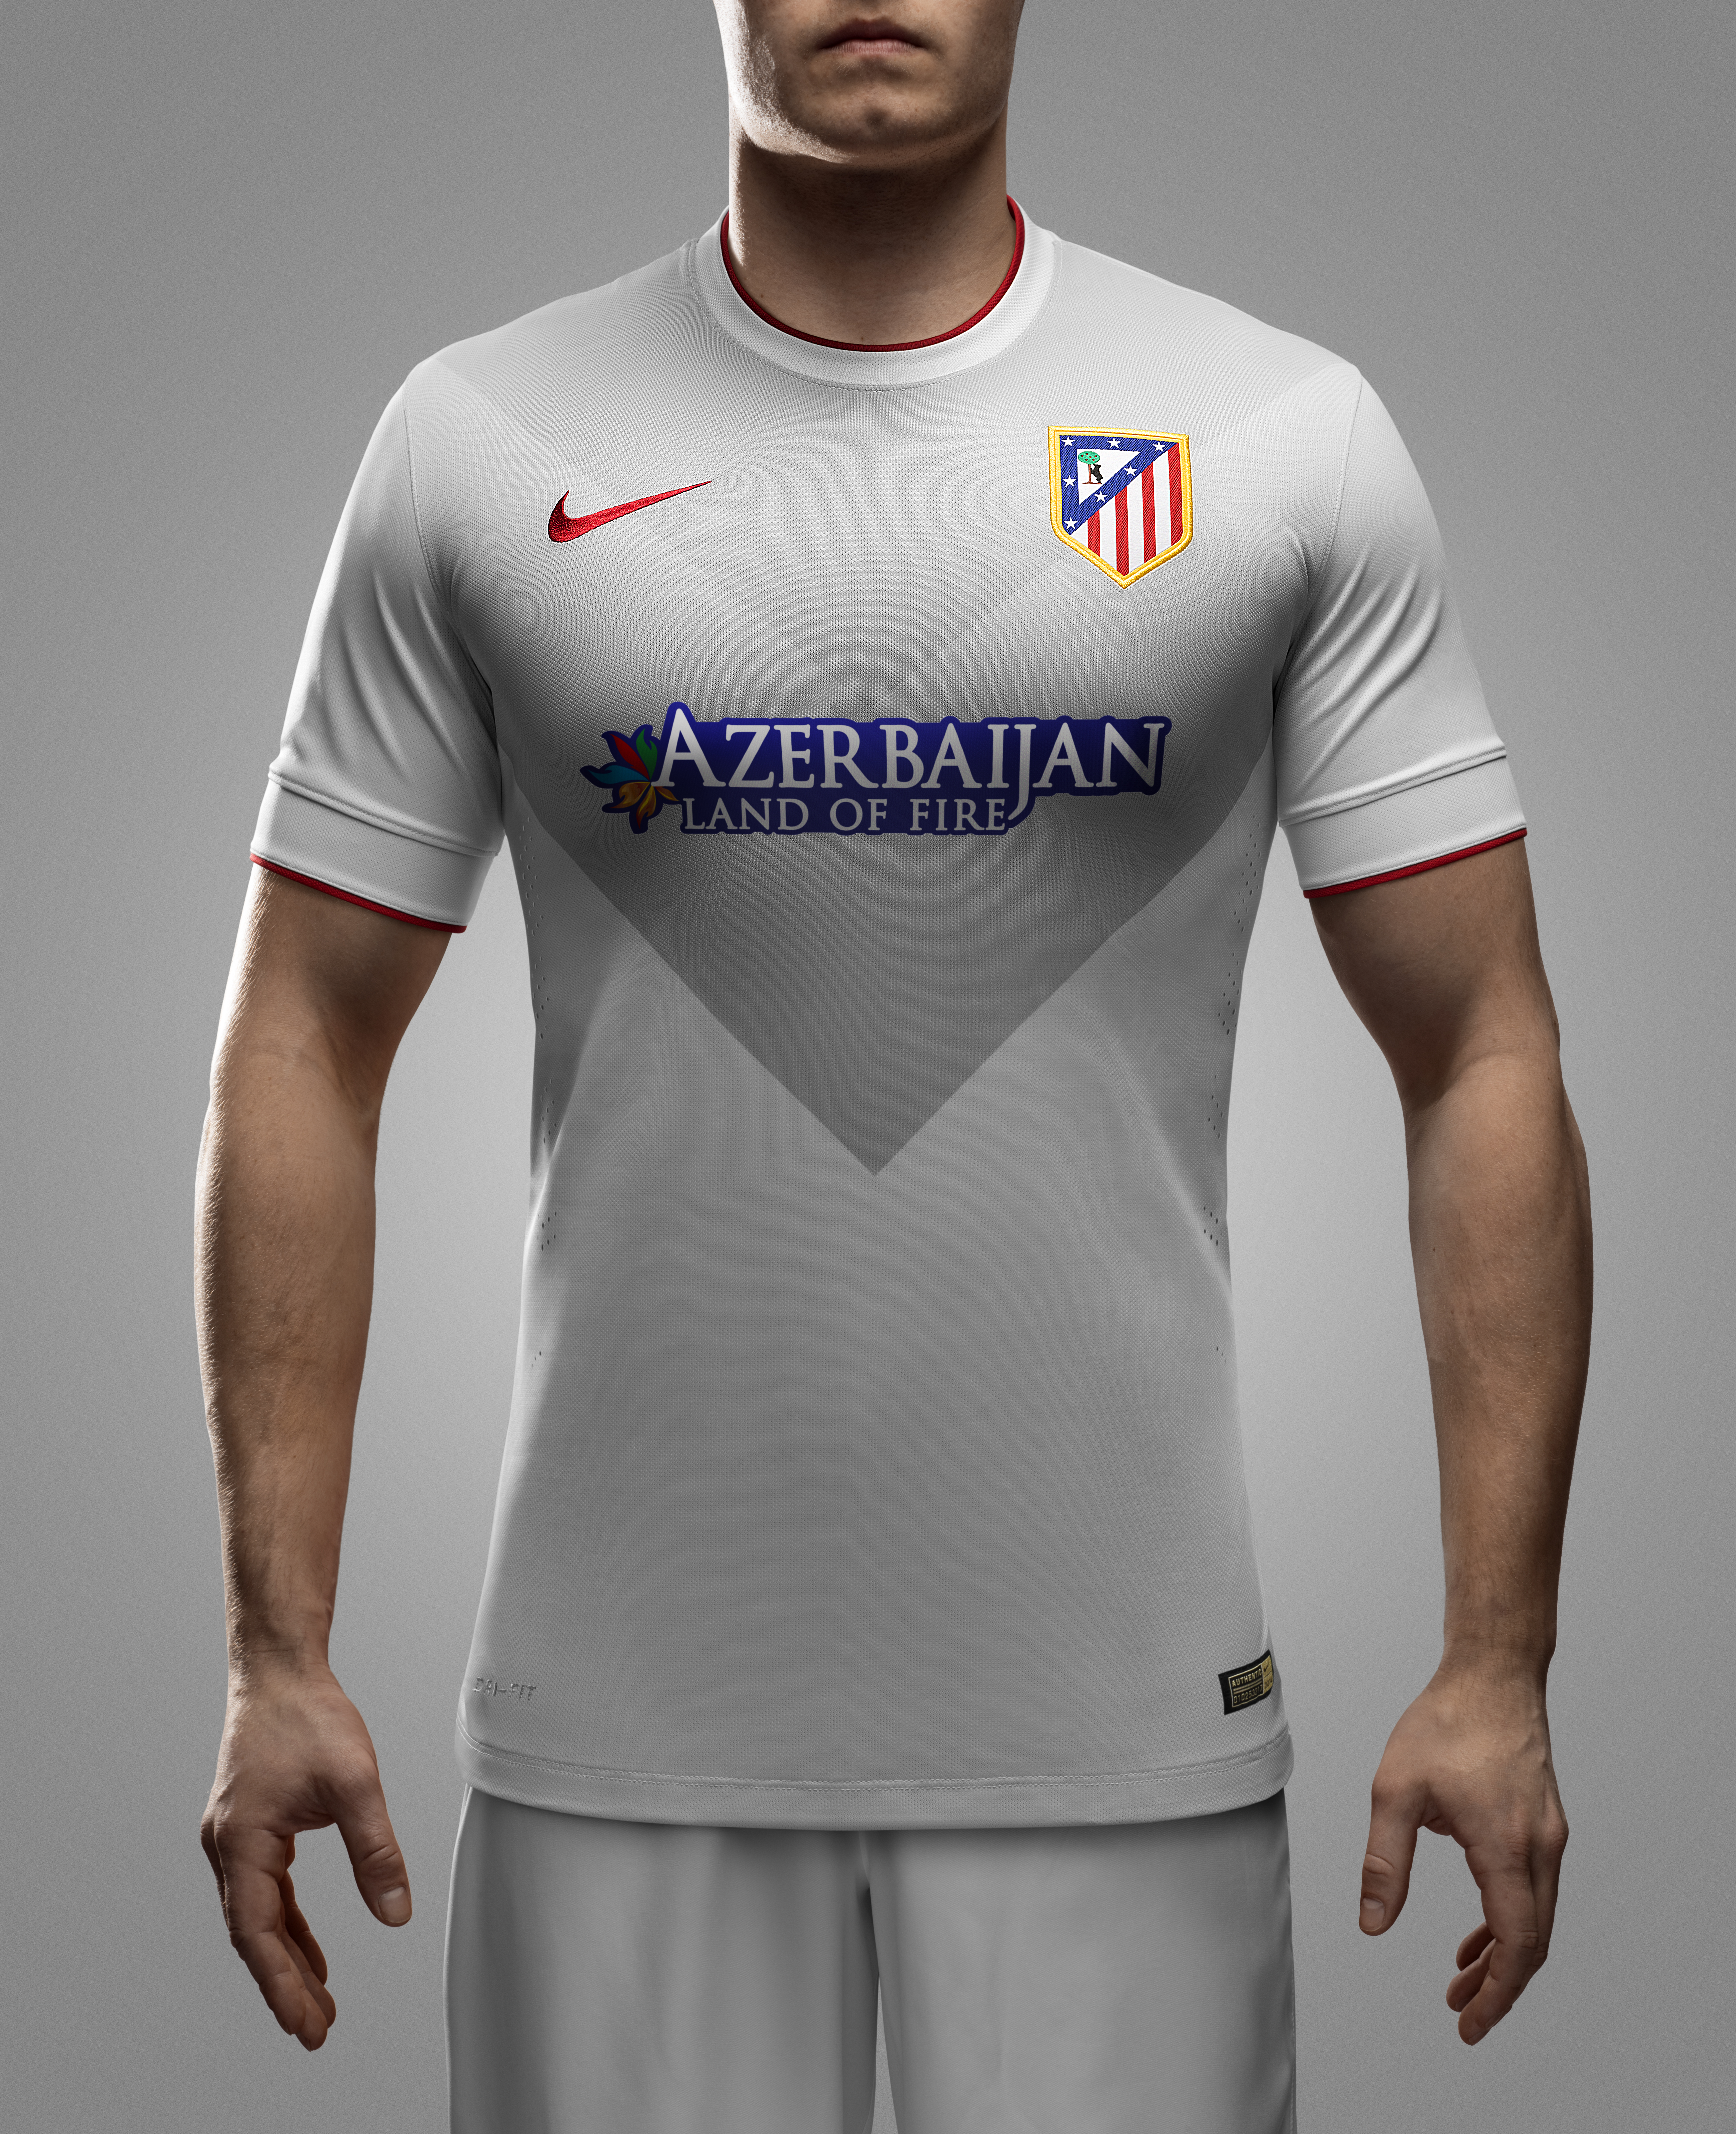 Fa14_FB_WE_Club_Kits_Match_Atletico_Madrid_A_Front_R_original.jpg?1405445482